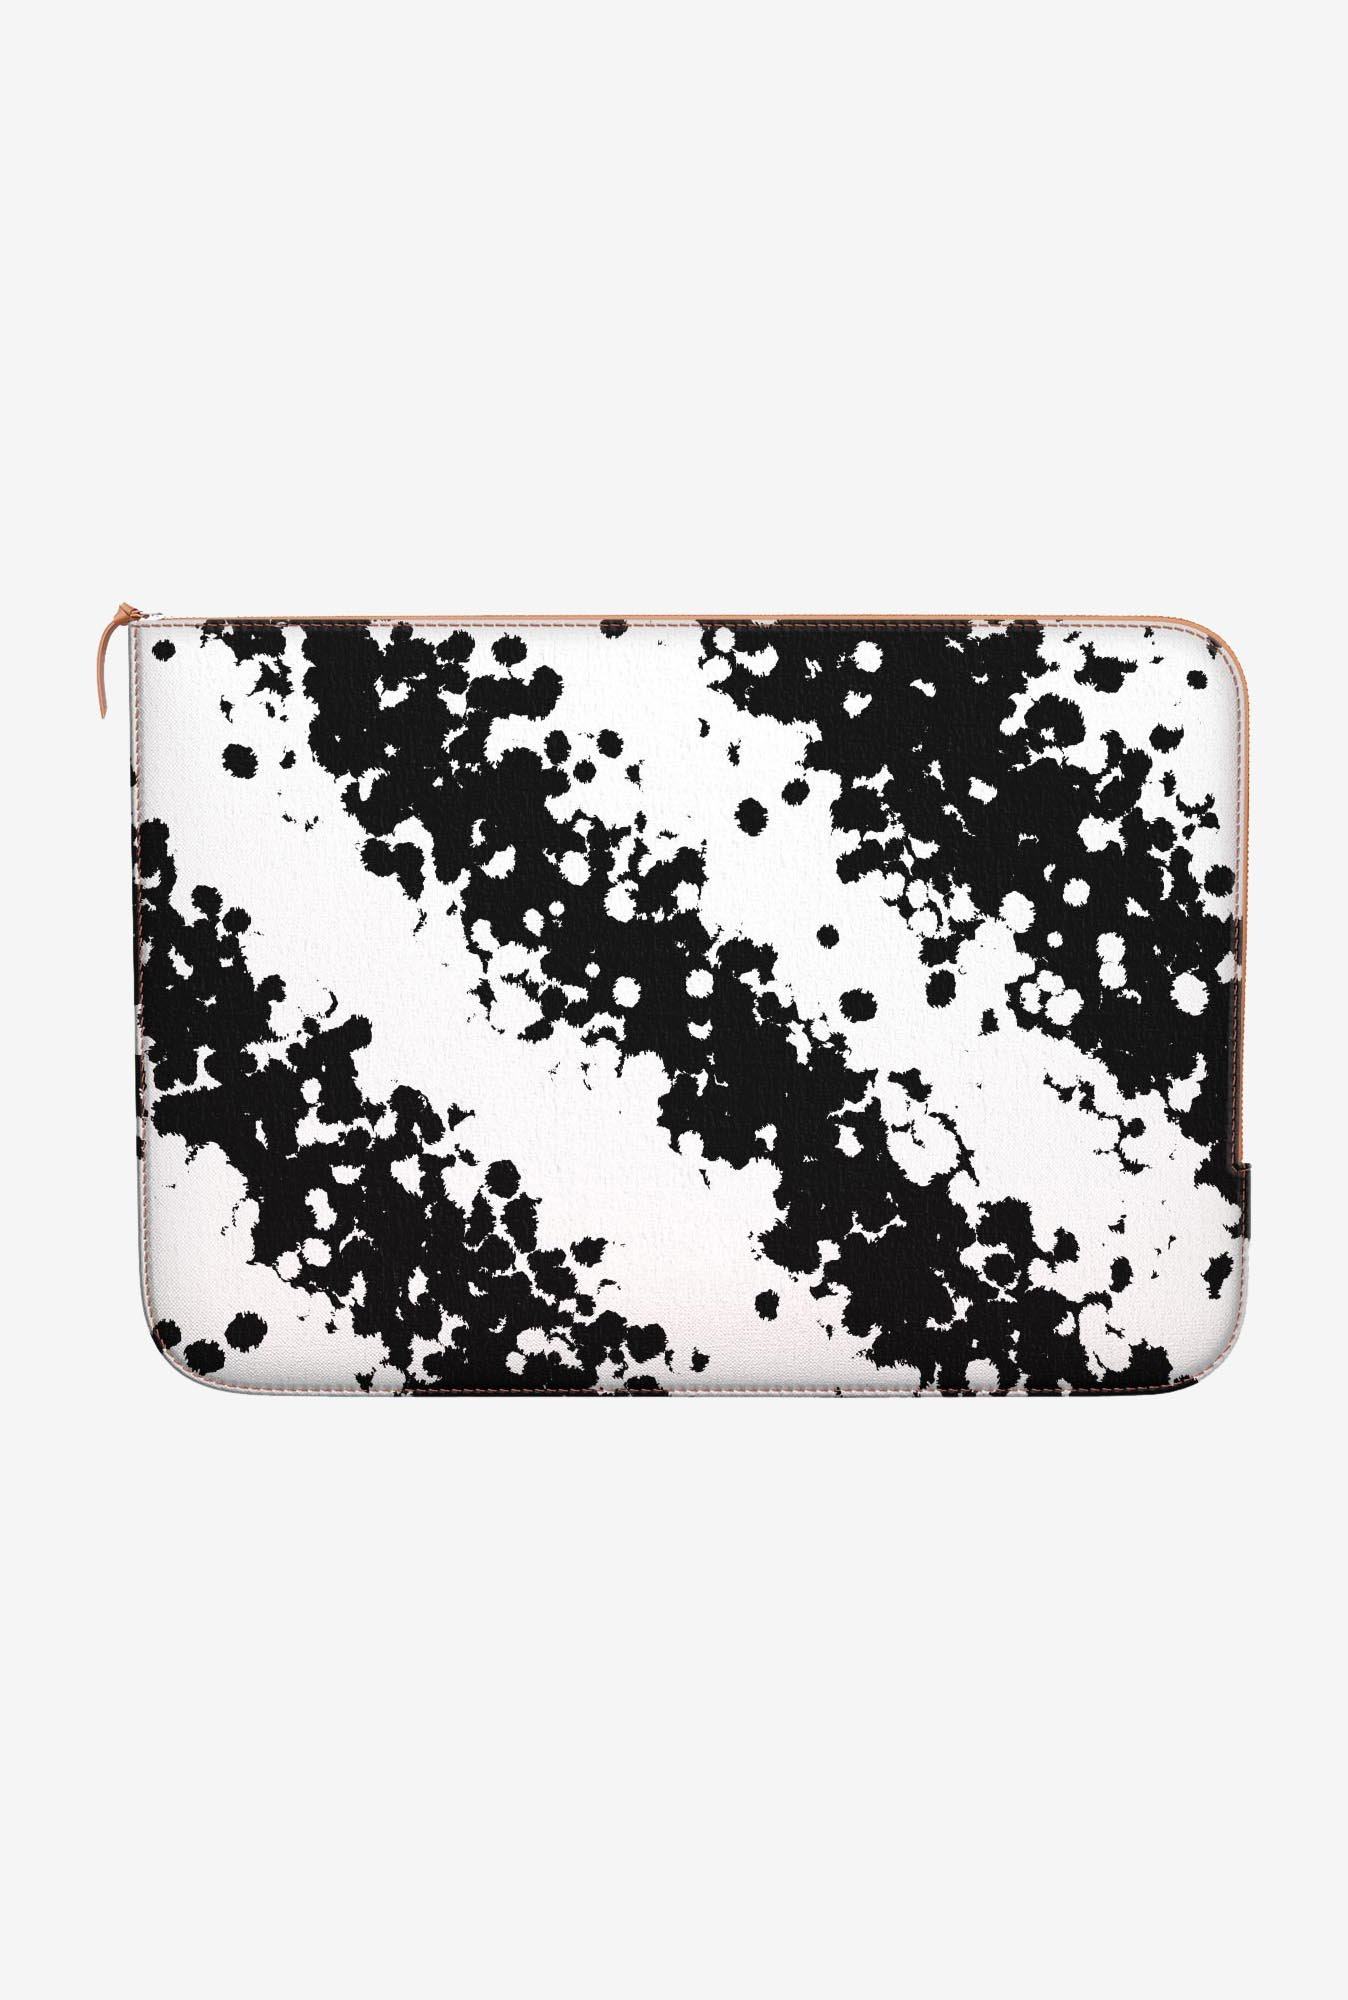 DailyObjects Polka Stripes MacBook Air 13 Zippered Sleeve